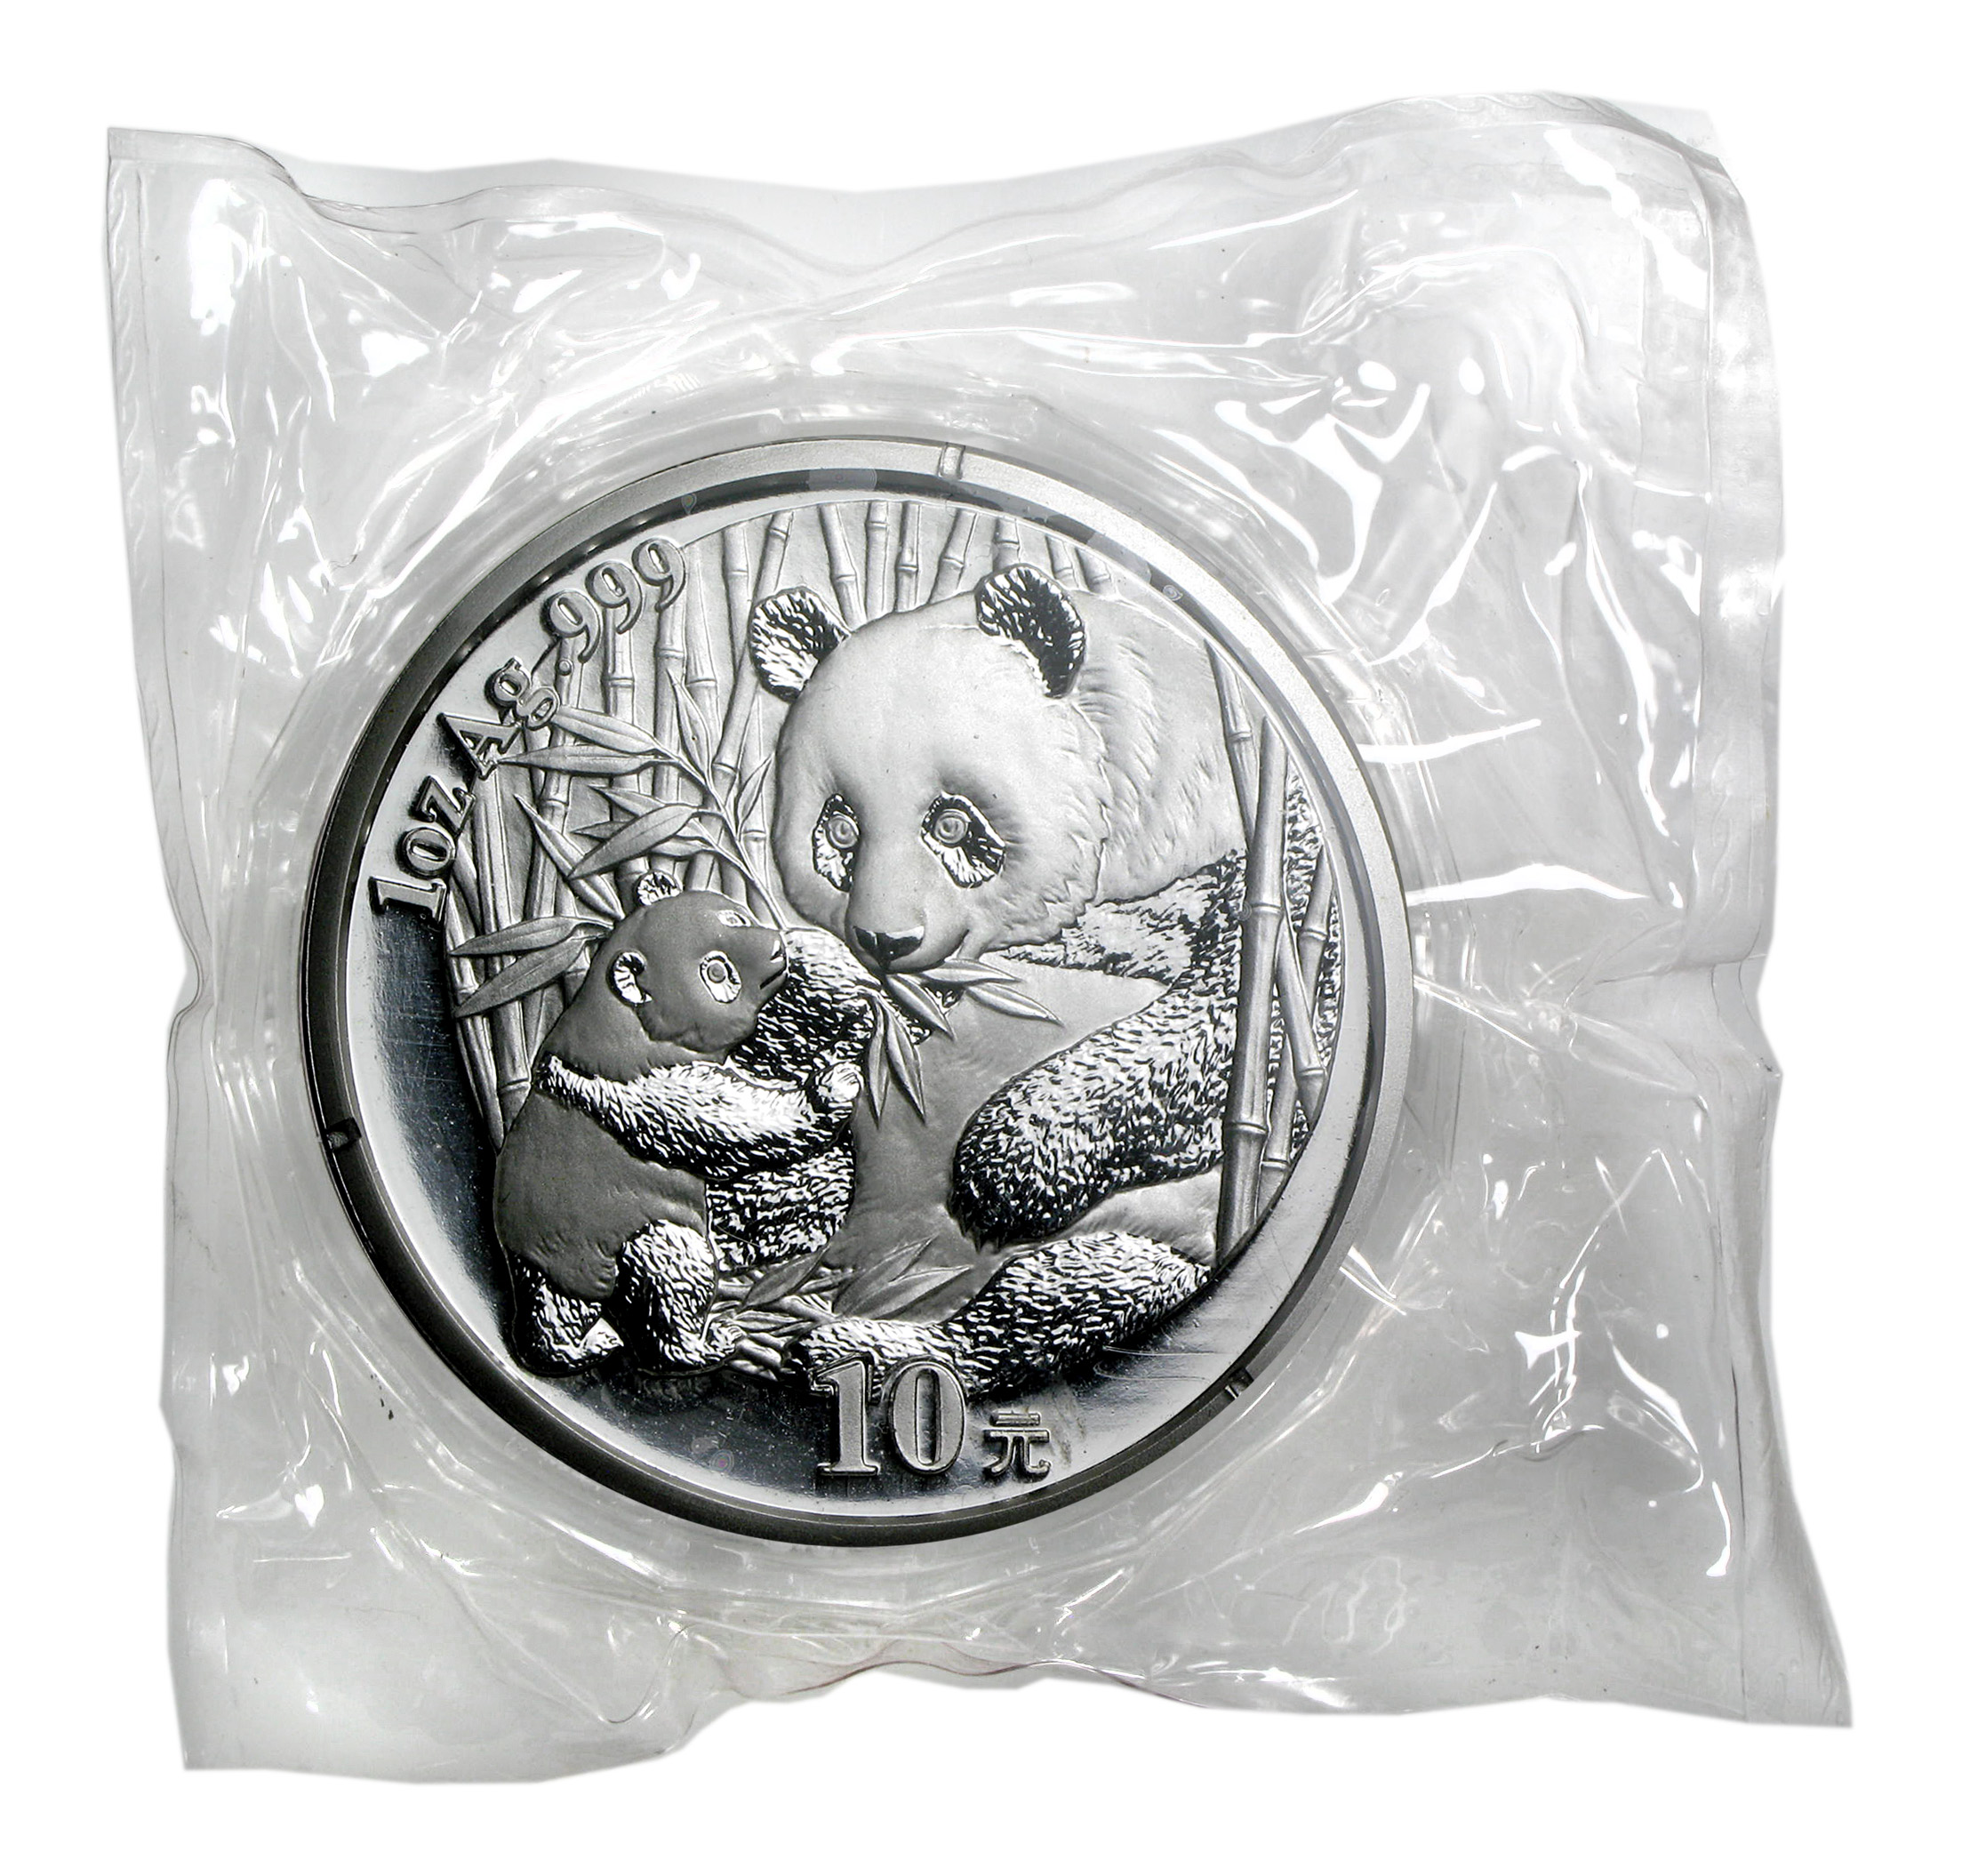 2005 1 oz Silver Chinese Panda BU (Sealed)